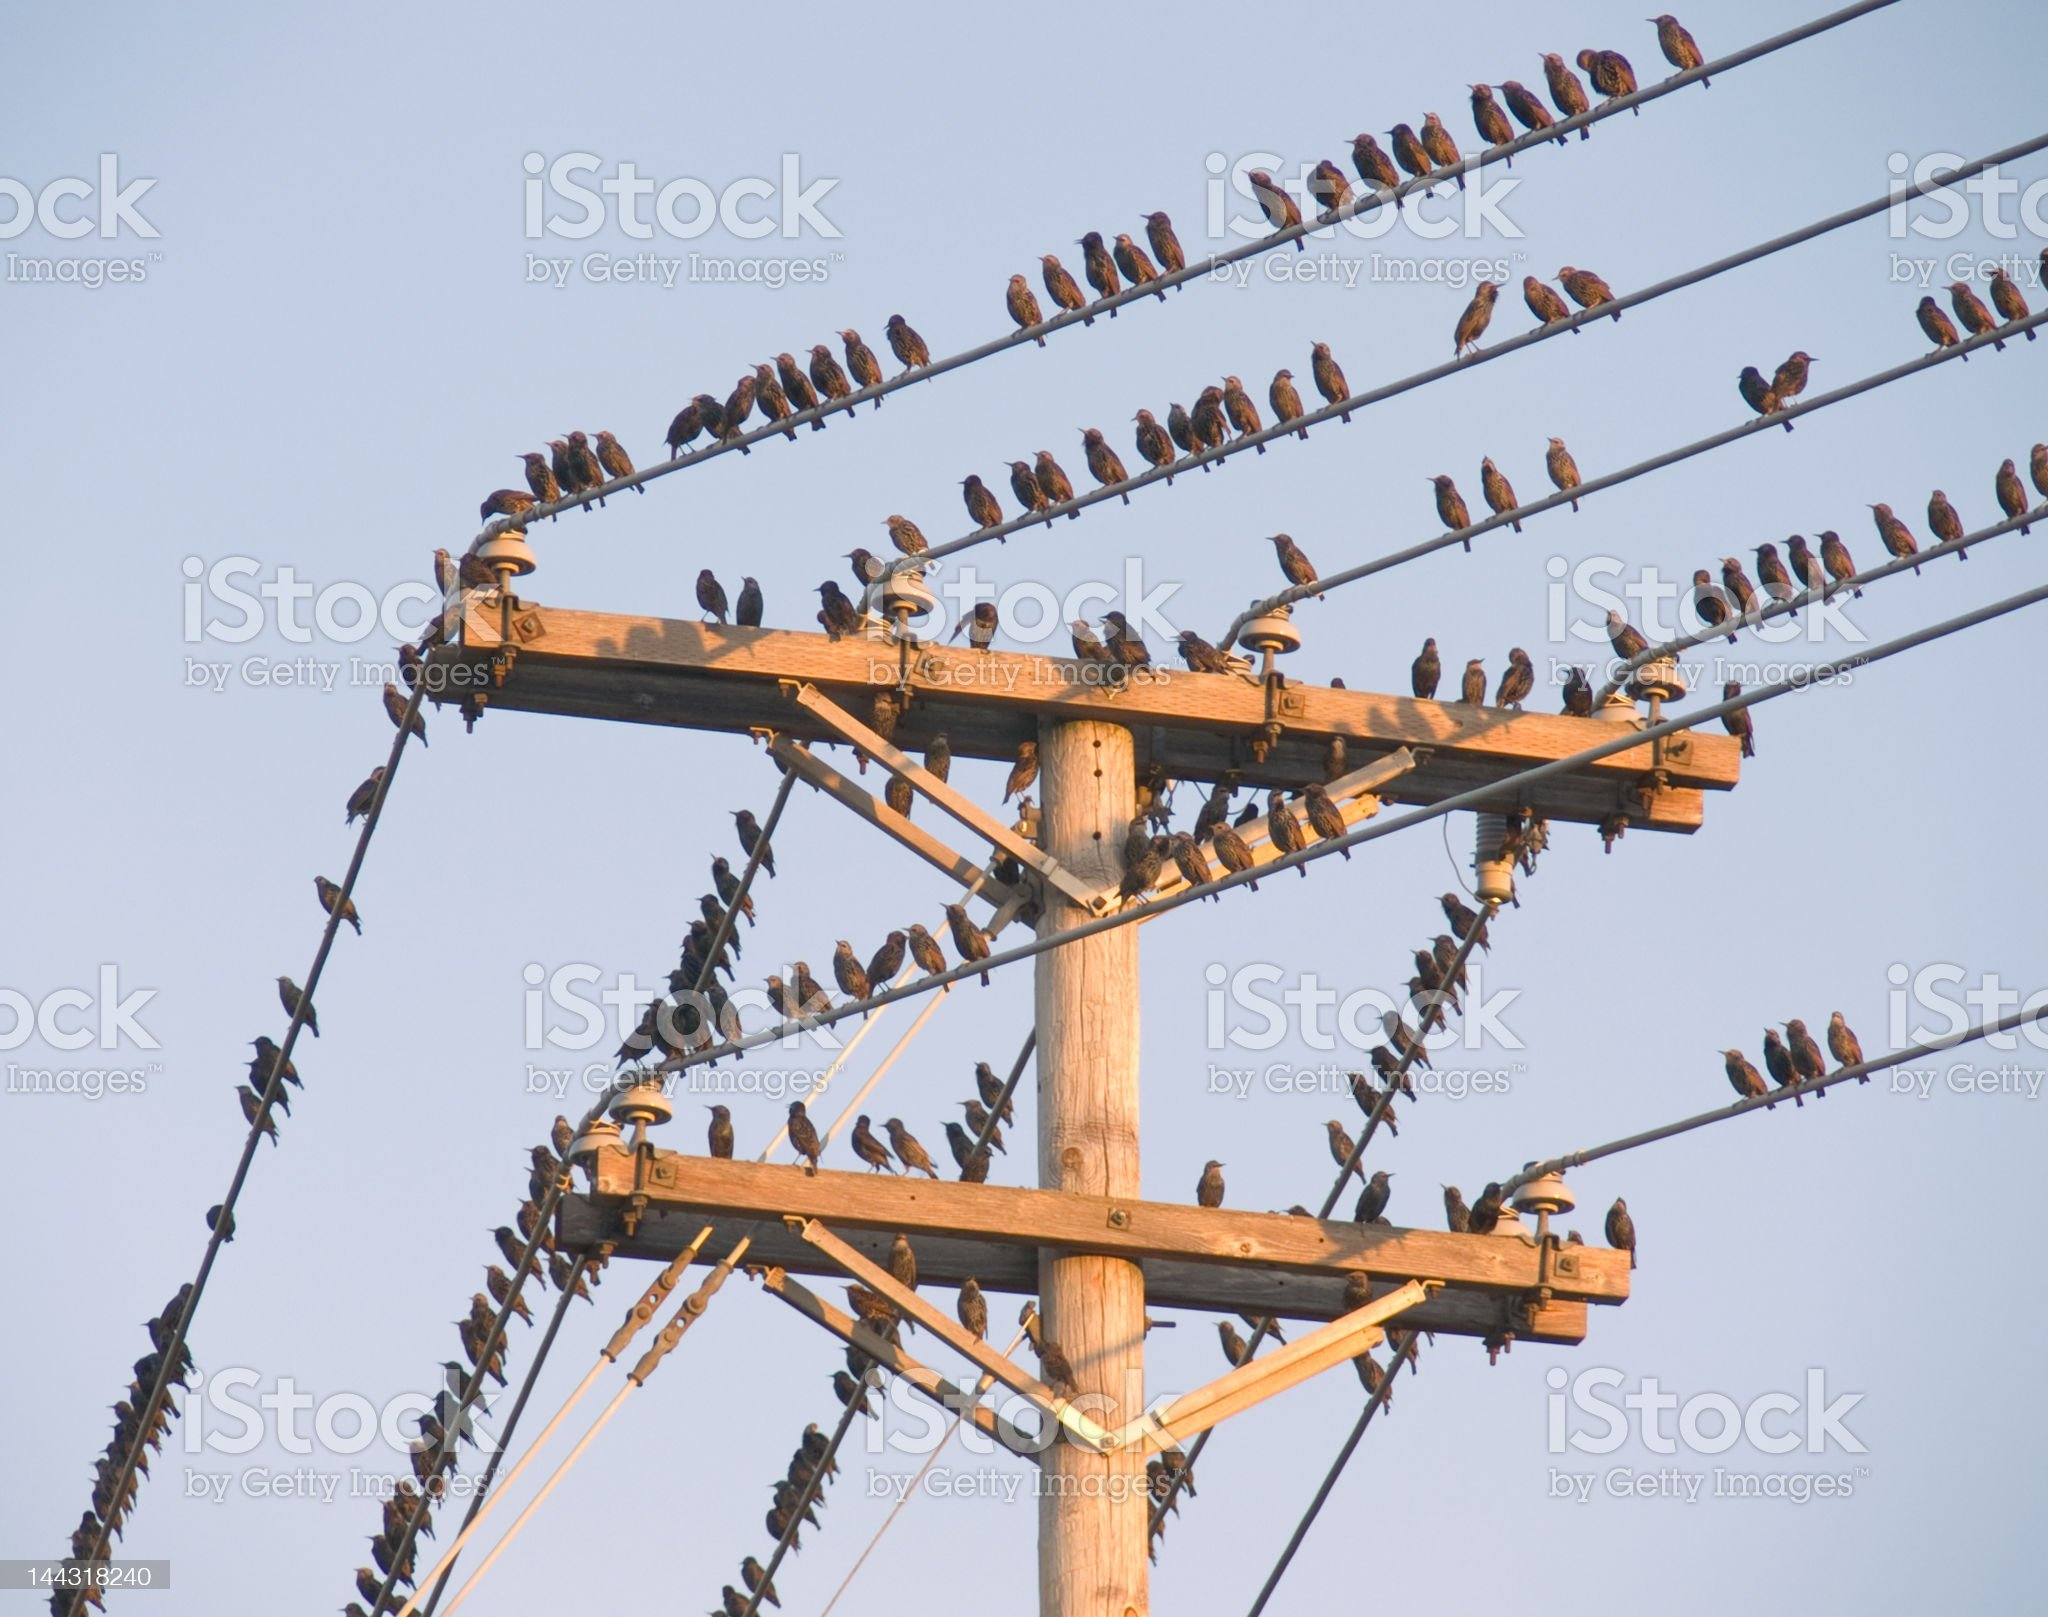 Birds on a Wire royalty-free stock photo